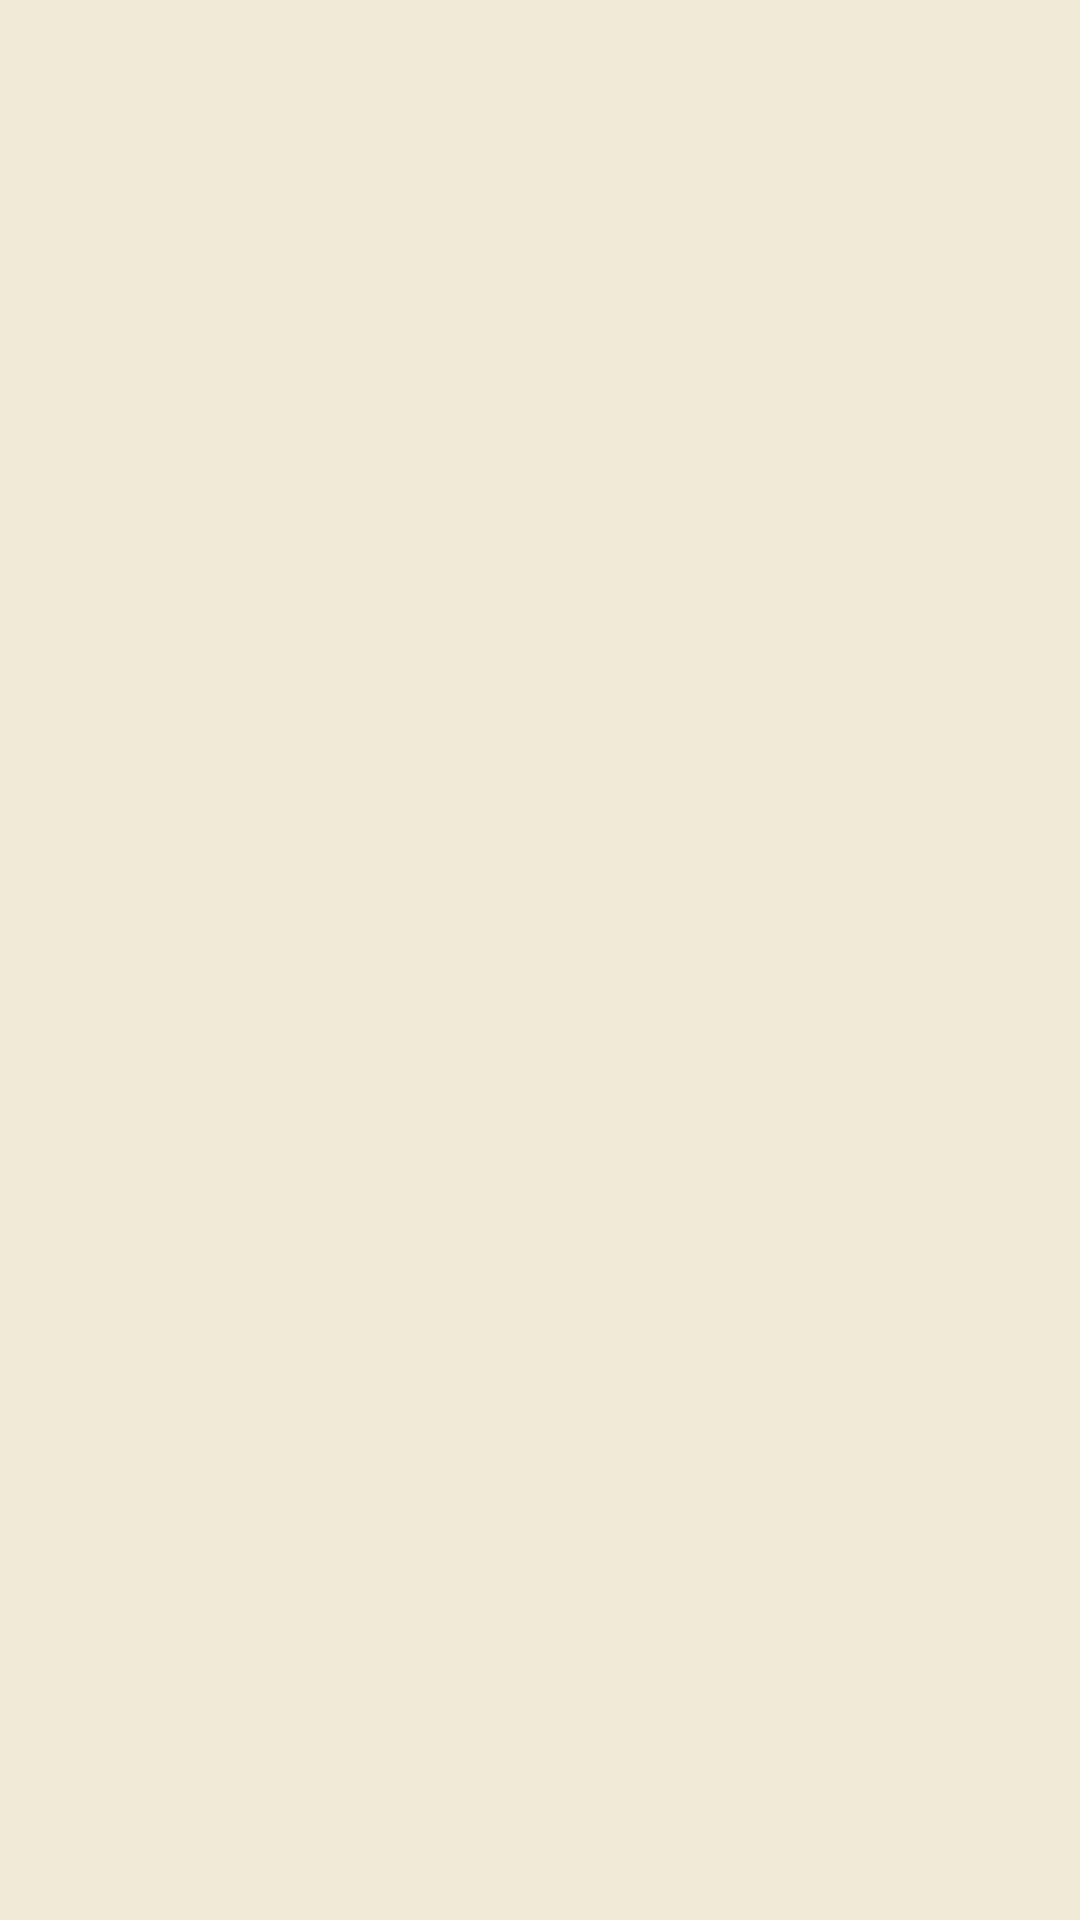 1080x1920 Eggshell Solid Color Background